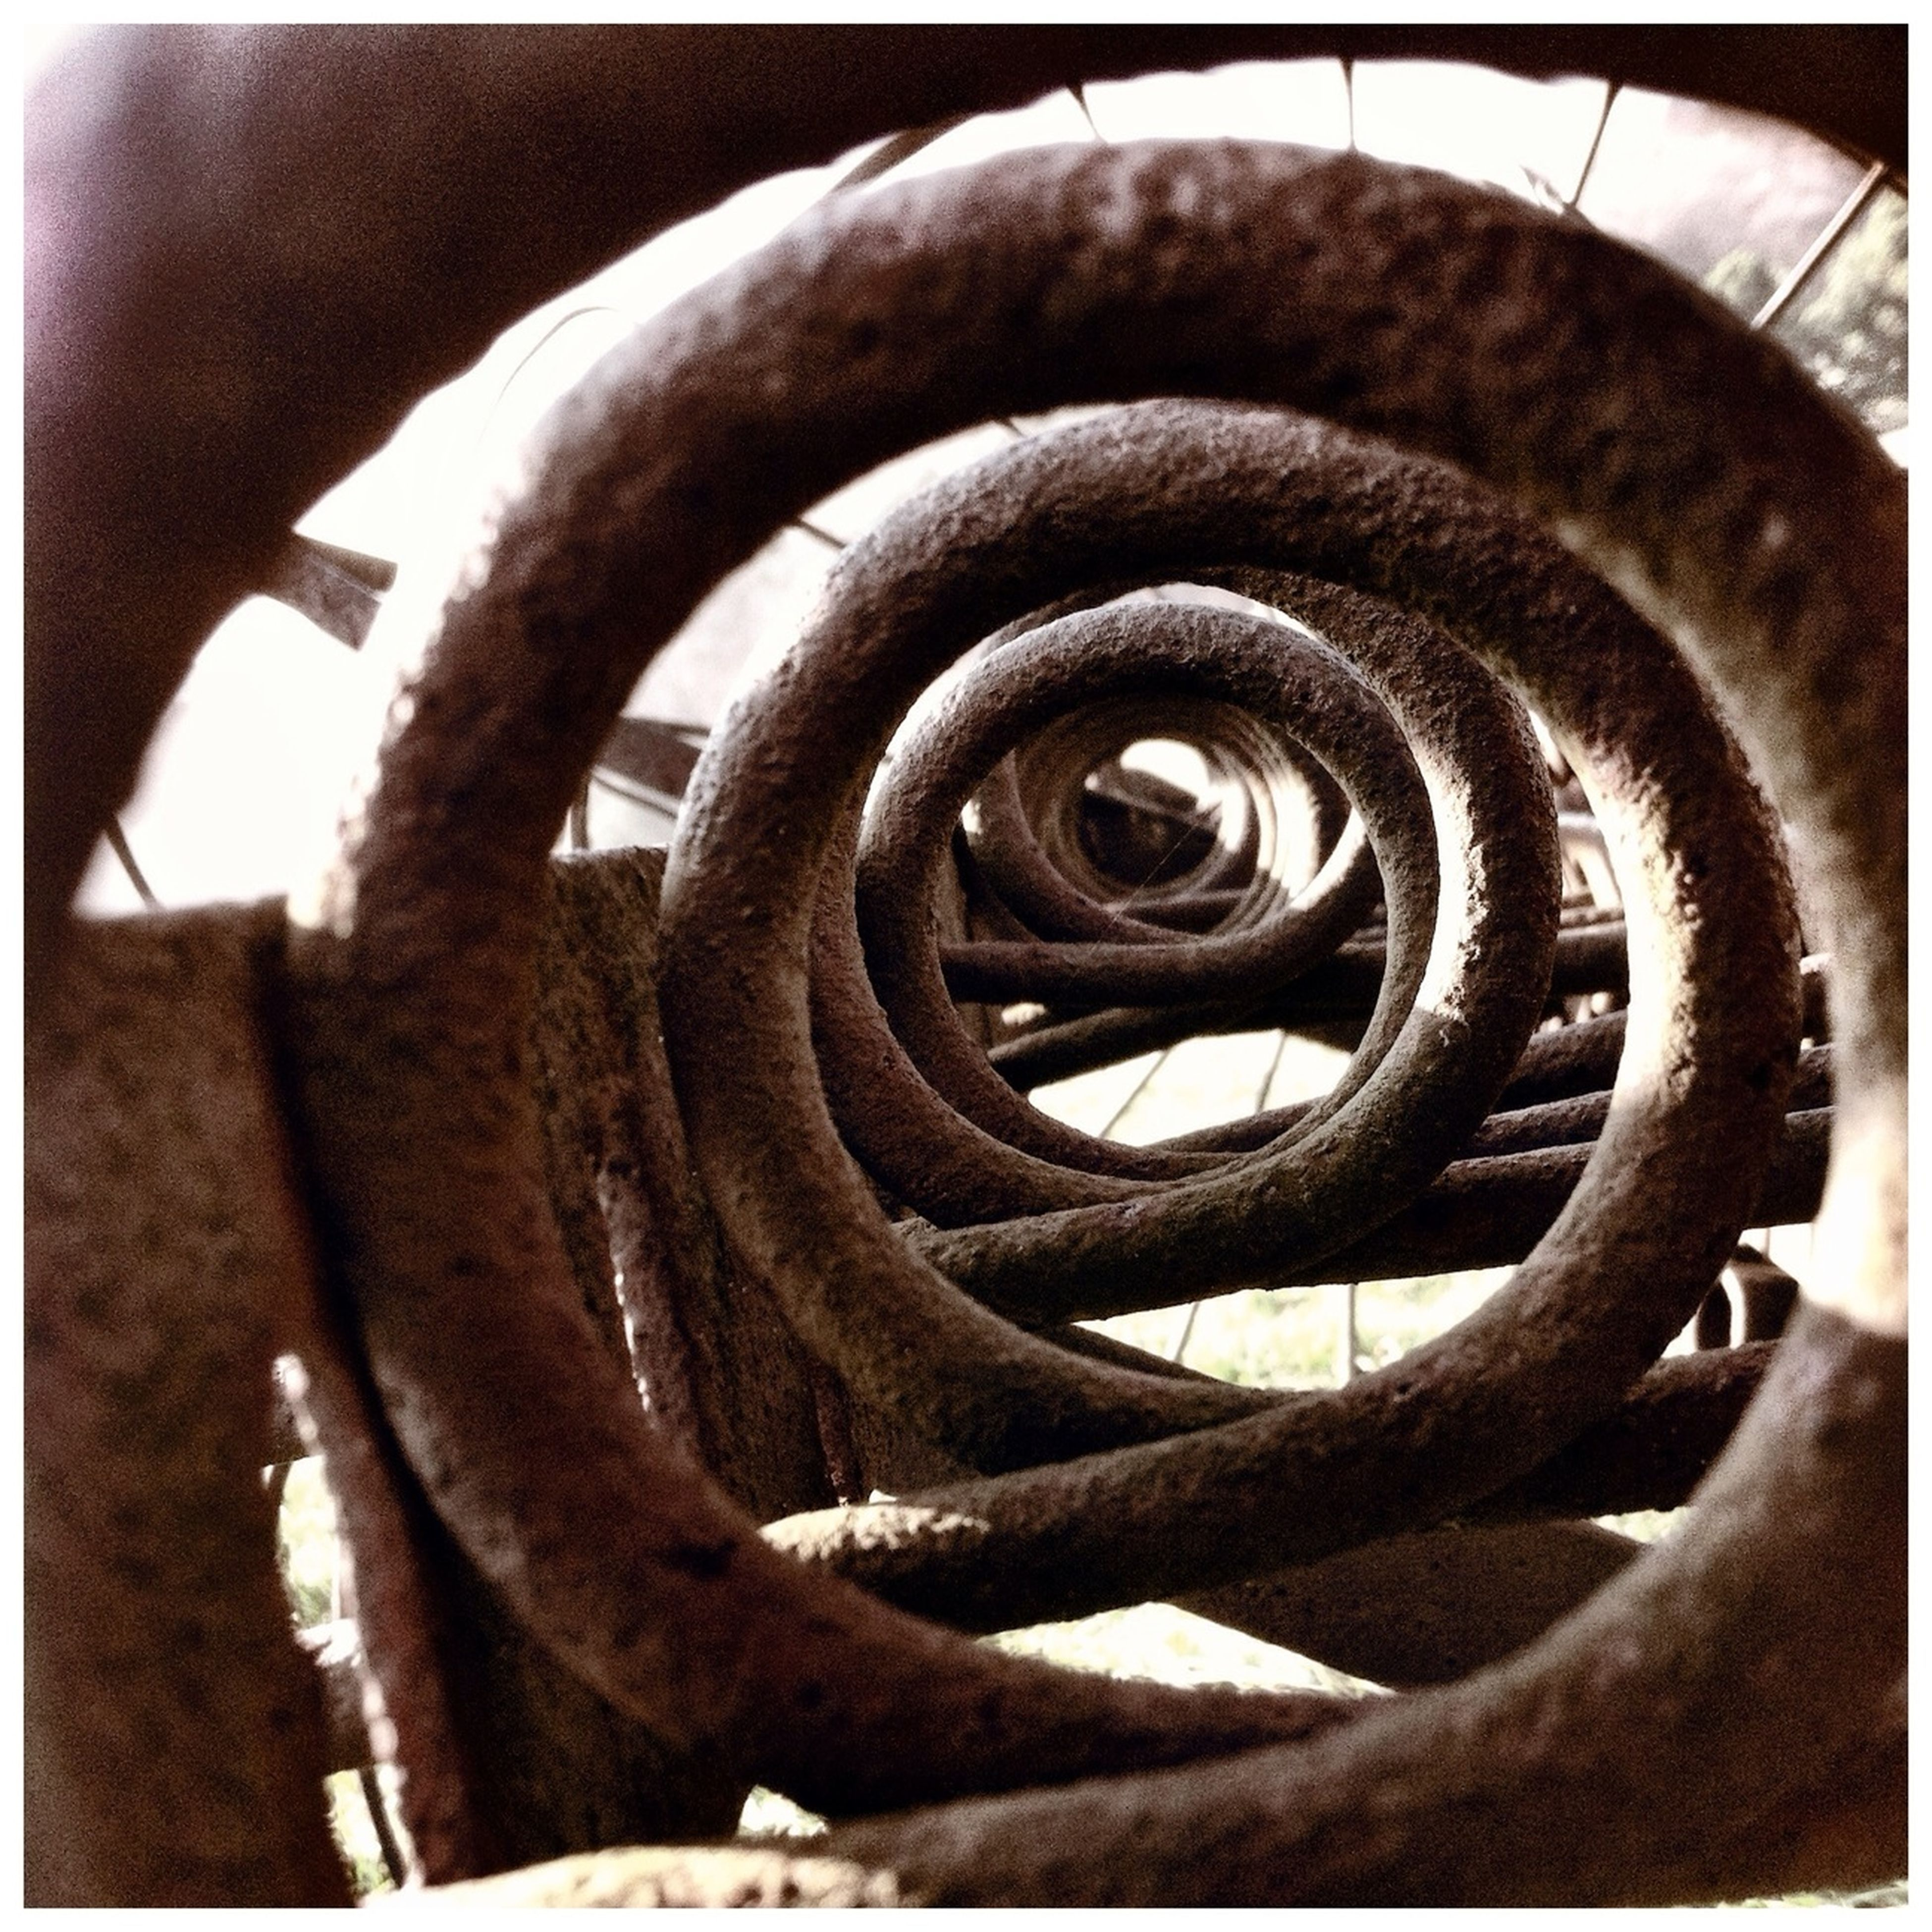 transfer print, metal, auto post production filter, rusty, close-up, metallic, old, strength, spiral, pattern, indoors, full frame, protection, no people, abandoned, weathered, damaged, day, deterioration, textured